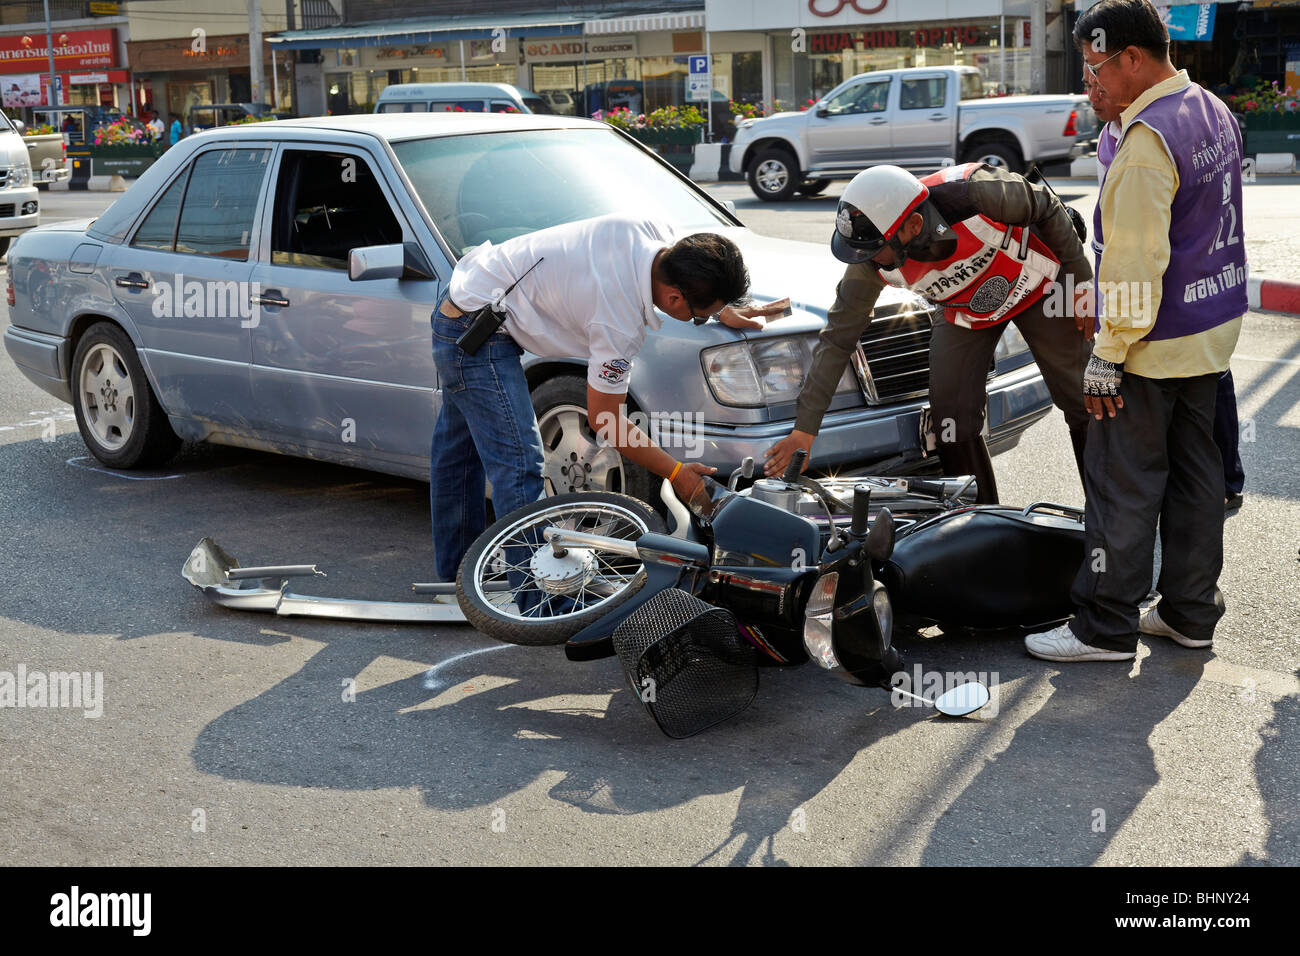 Road accident involving a car and a motorcycle with police